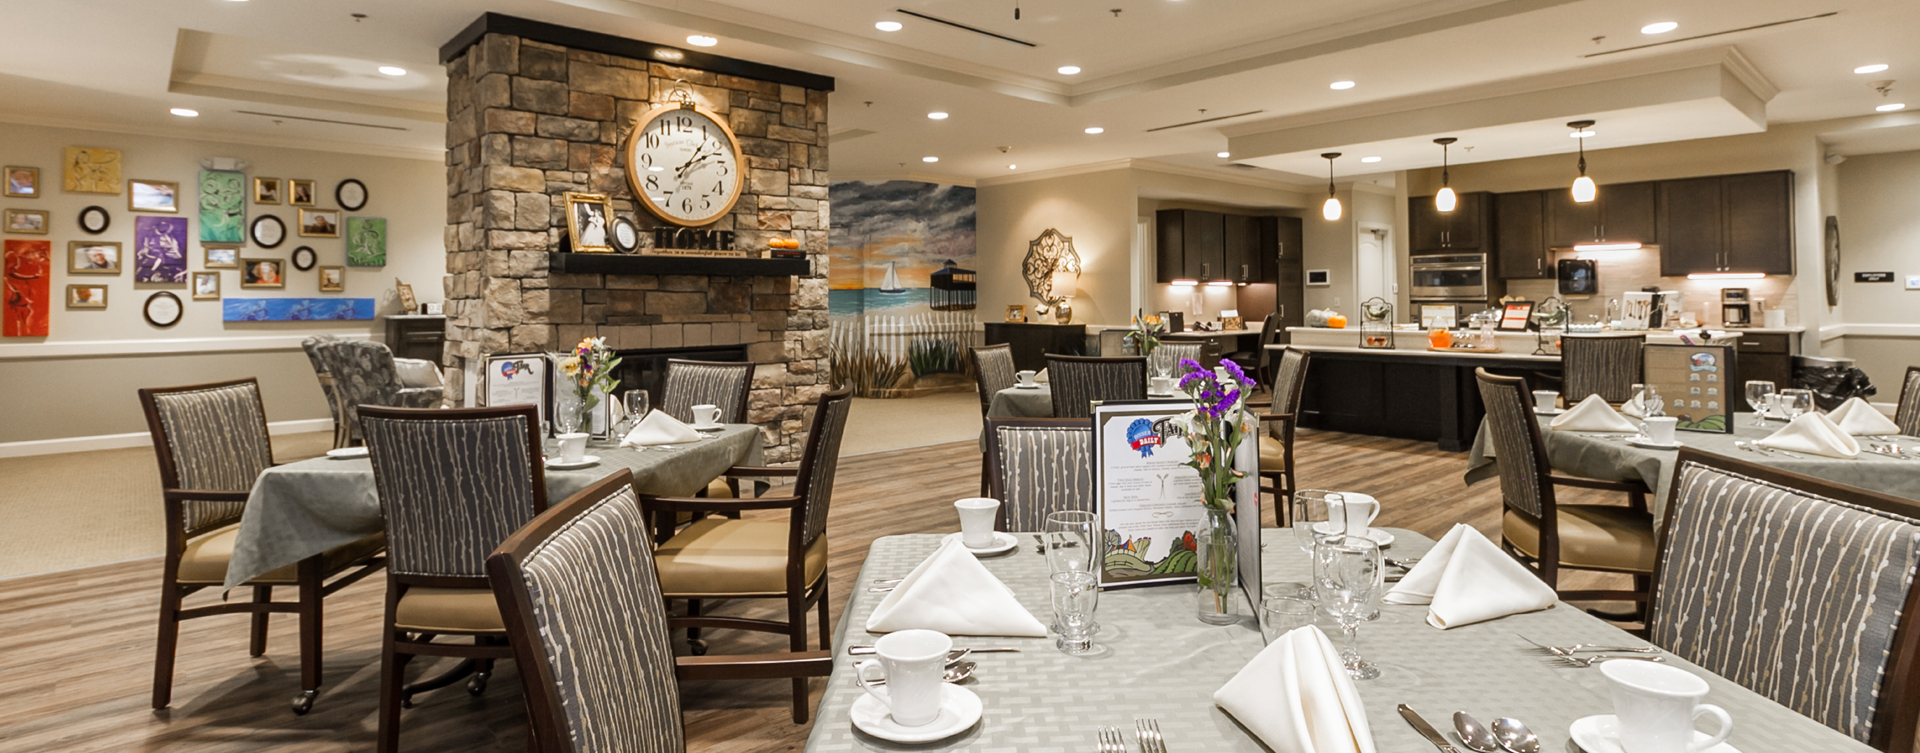 Mary B's country kitchen evokes a sense of home and reconnects residents to past life skills at Bickford of Virginia Beach